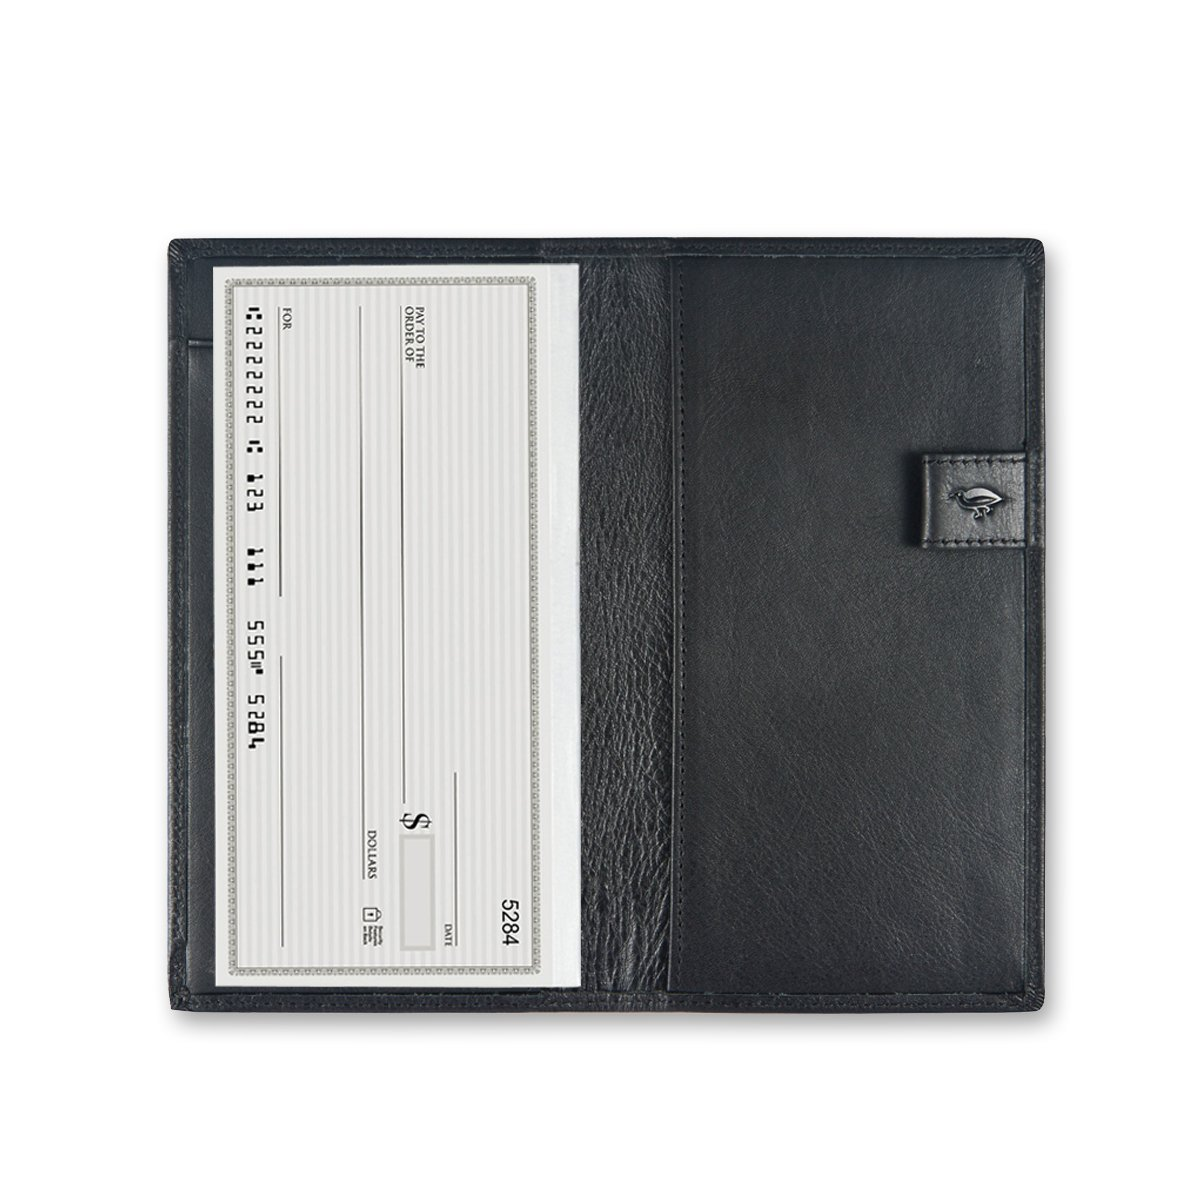 Checkbook Cover with Divider for Men/Women,Made by Italy Leather by IKEPOD